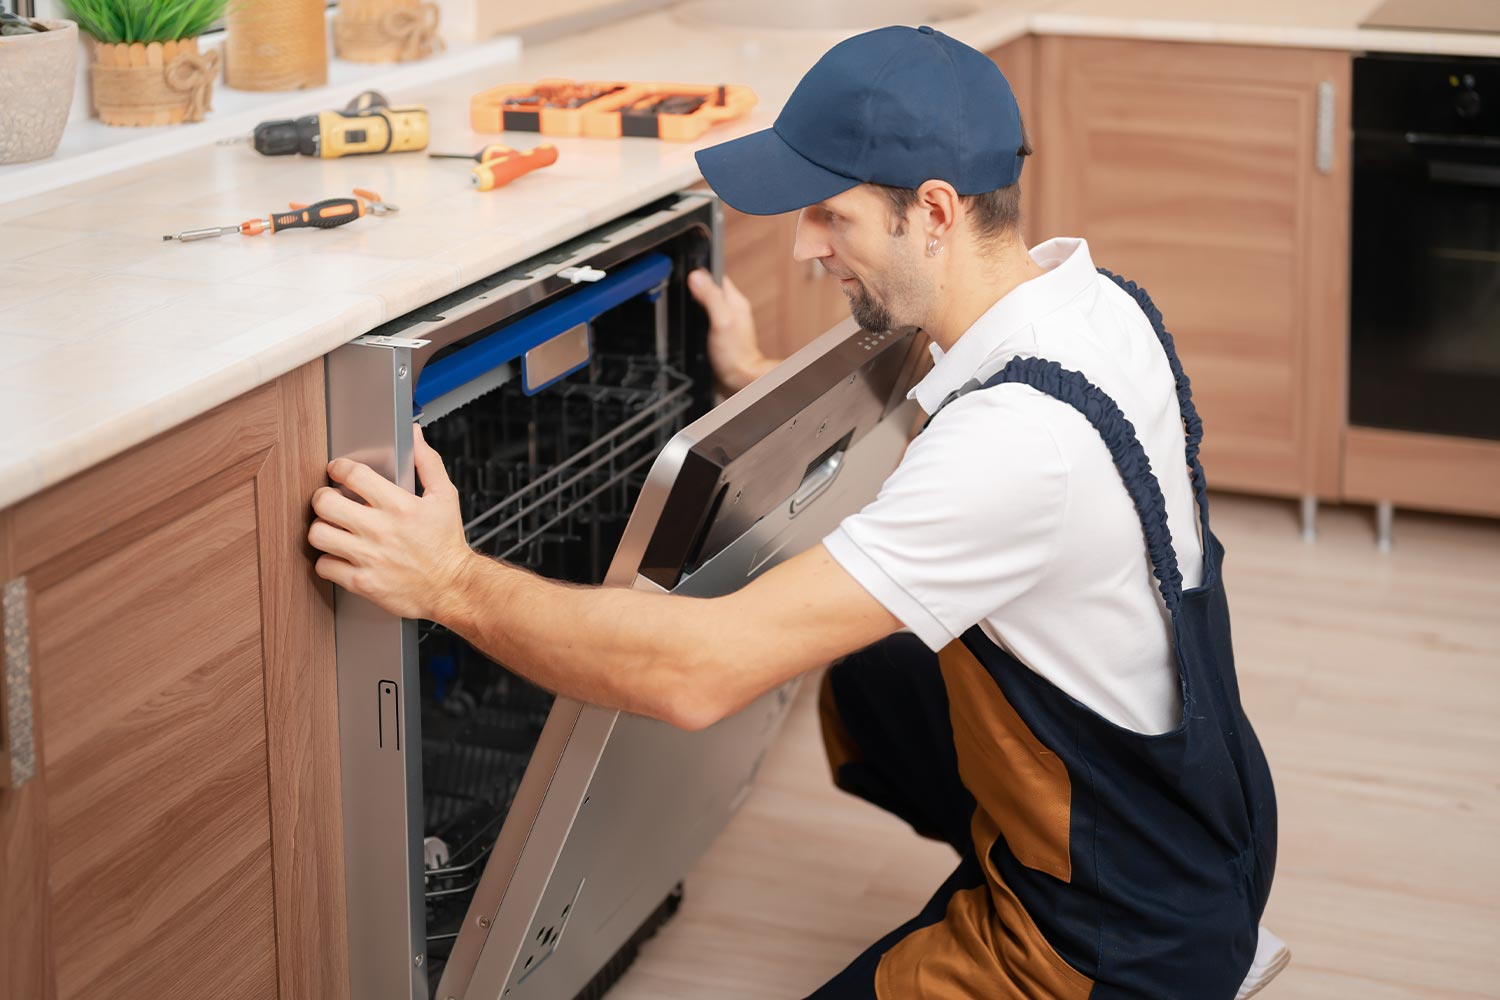 A mover disassembles a dishwasher